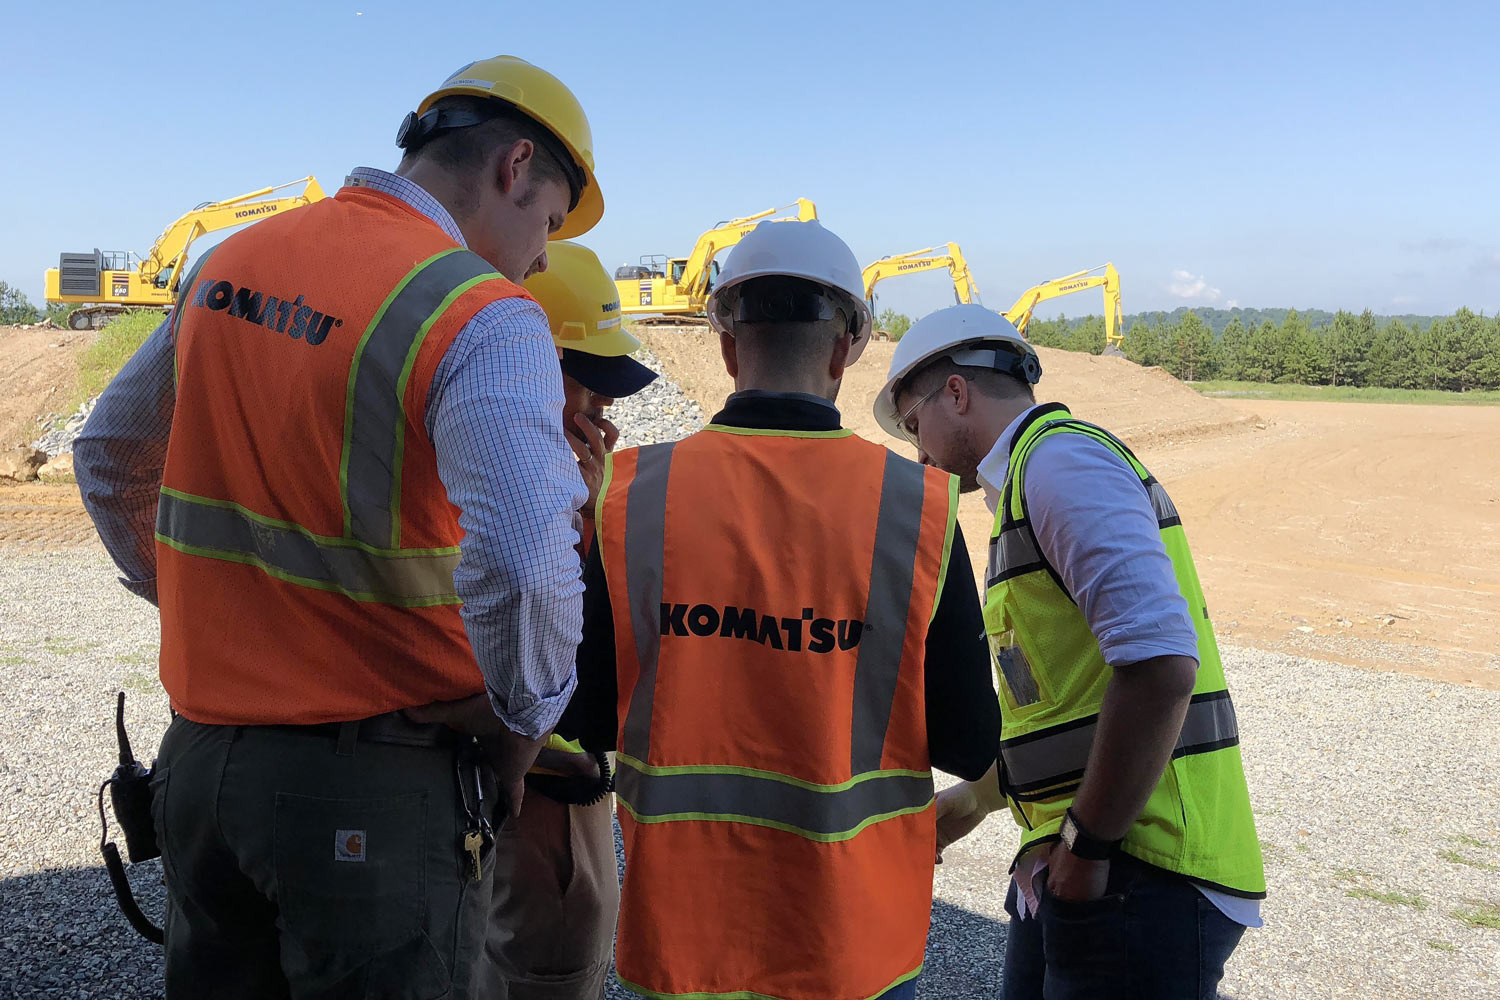 Komatsu America testing drone data solutions provided by Propeller Aero